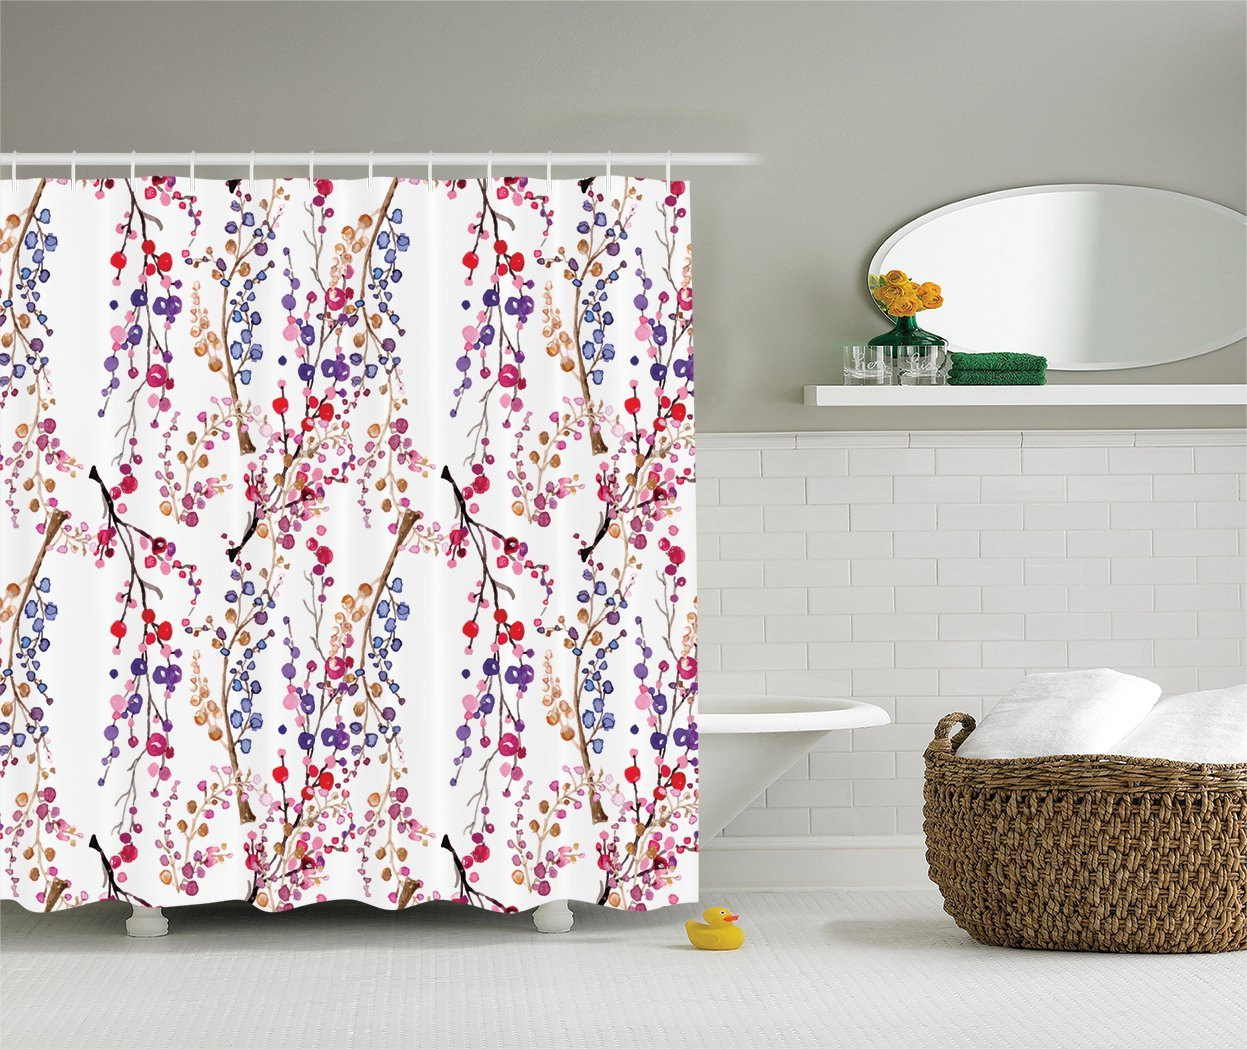 Ambesonne Watercolor Flower Decor Collection, Colorful Flower Sprigs and Branches Pattern in Watercolor, Polyester Fabric Bathroom Shower Curtain Set with Hooks, 84 Inches Extra Long, Red Pink Purple